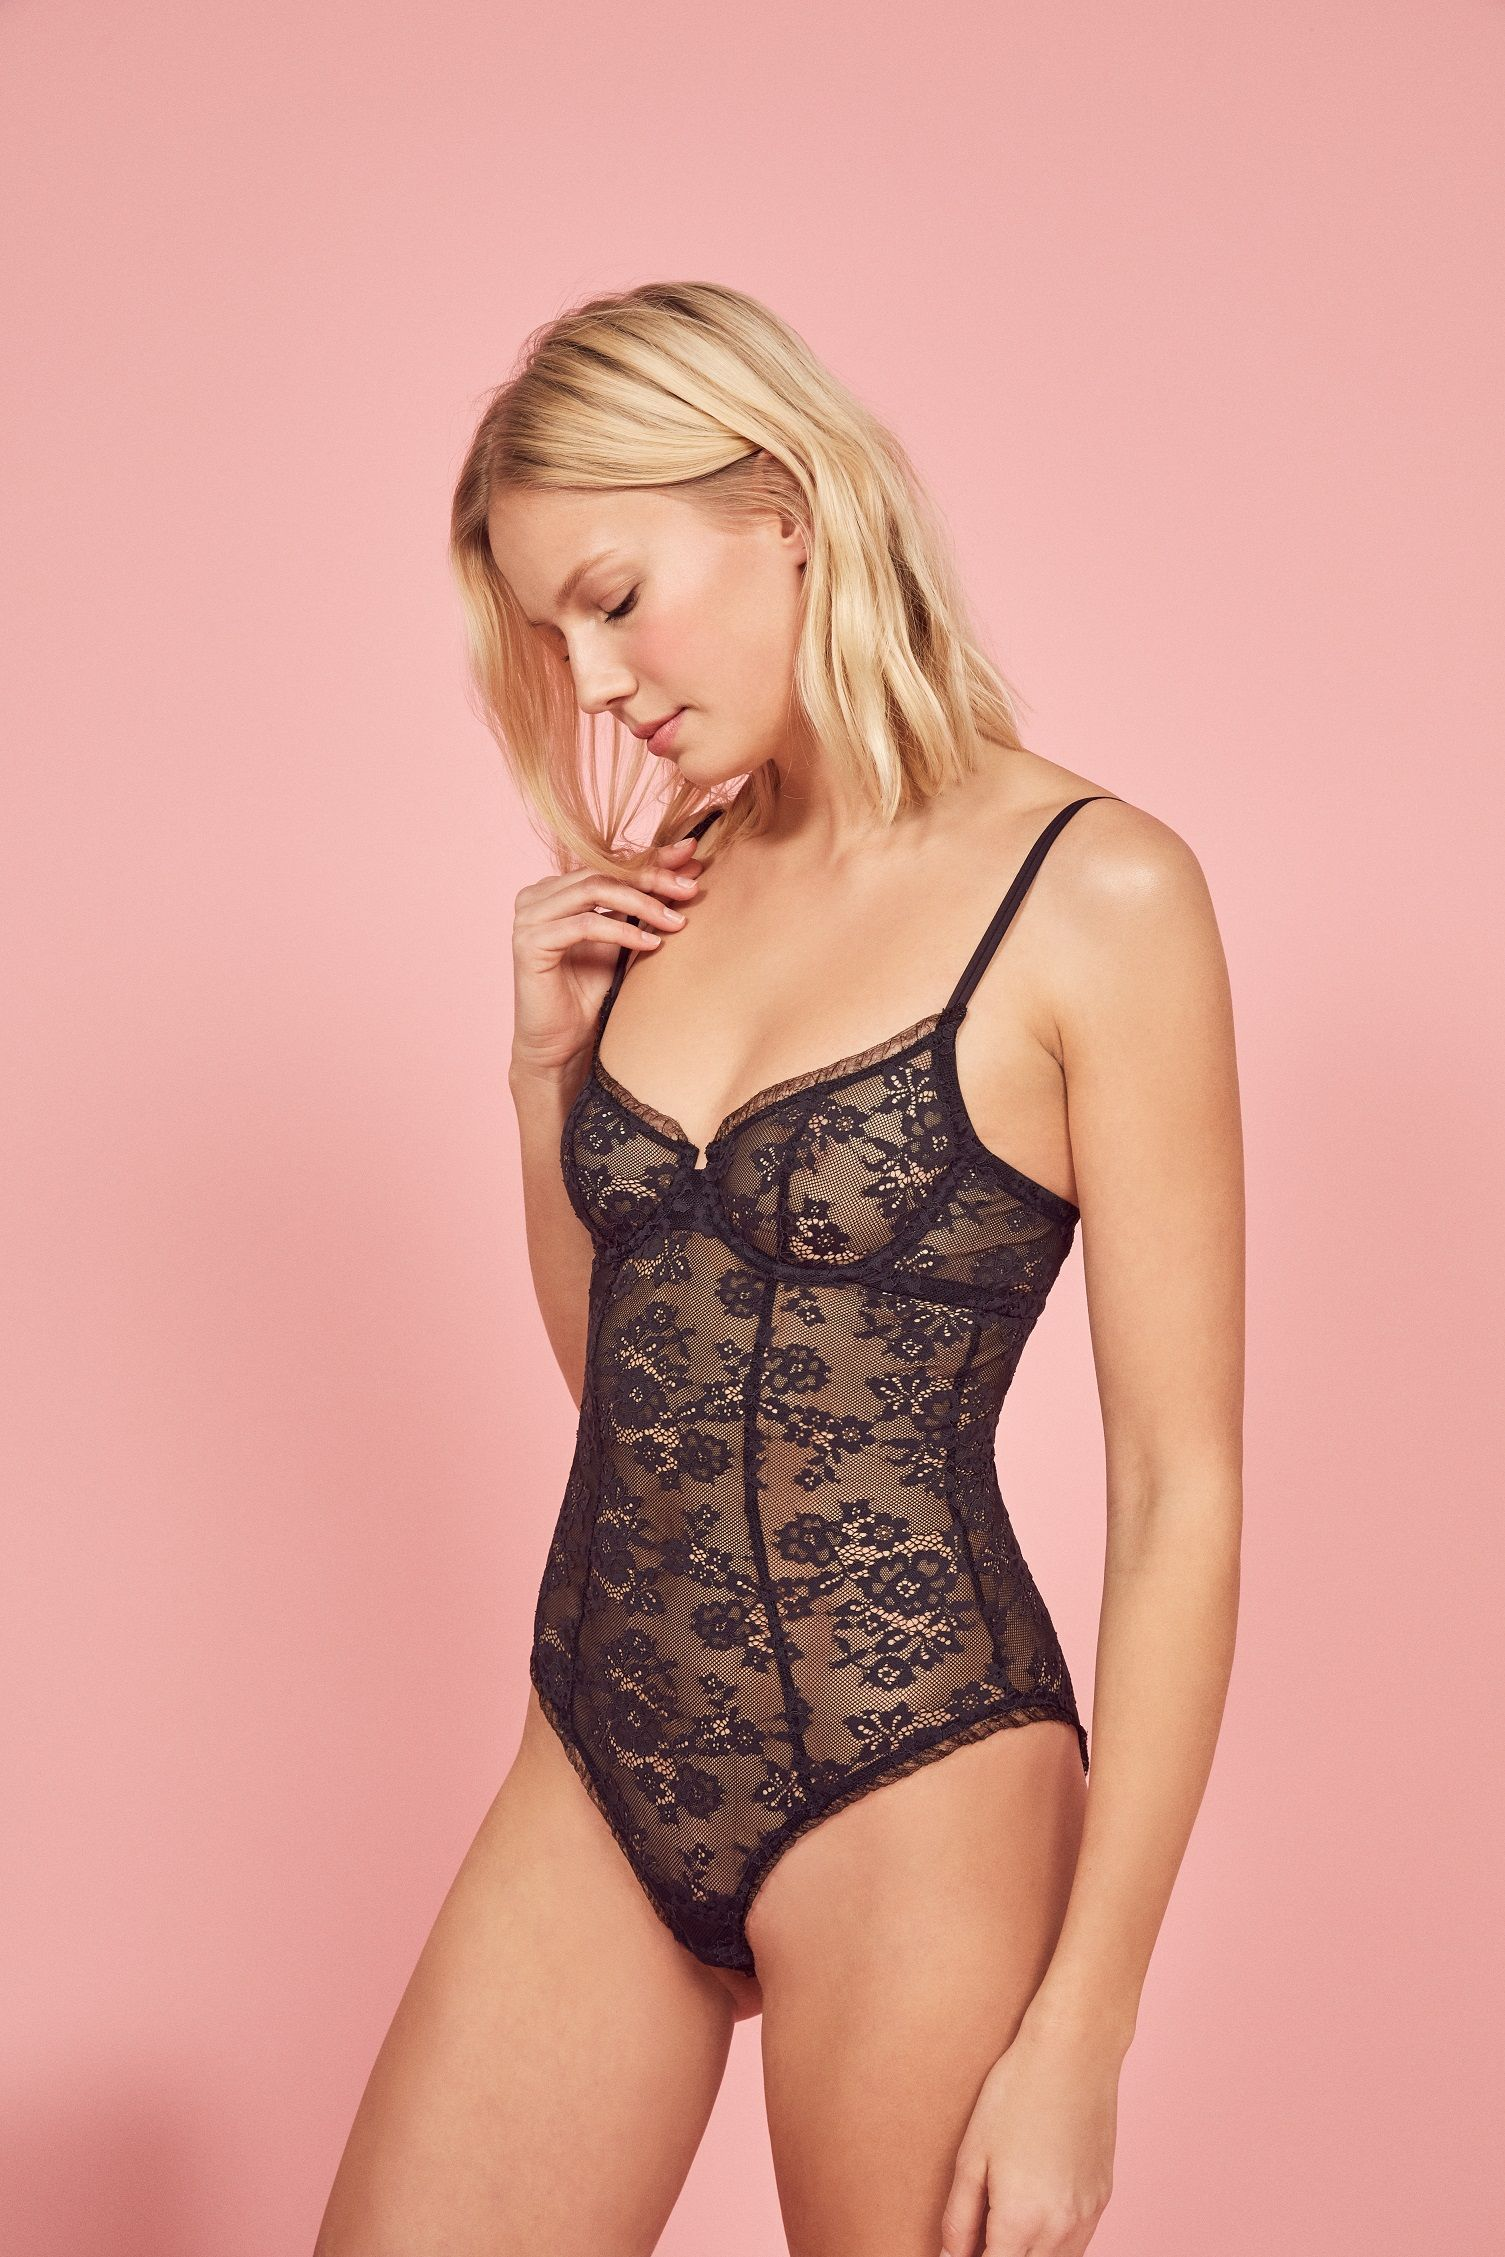 2c3971df374fe Say hi to some new lingerie we made with Cosabella. This is a lace bodysuit